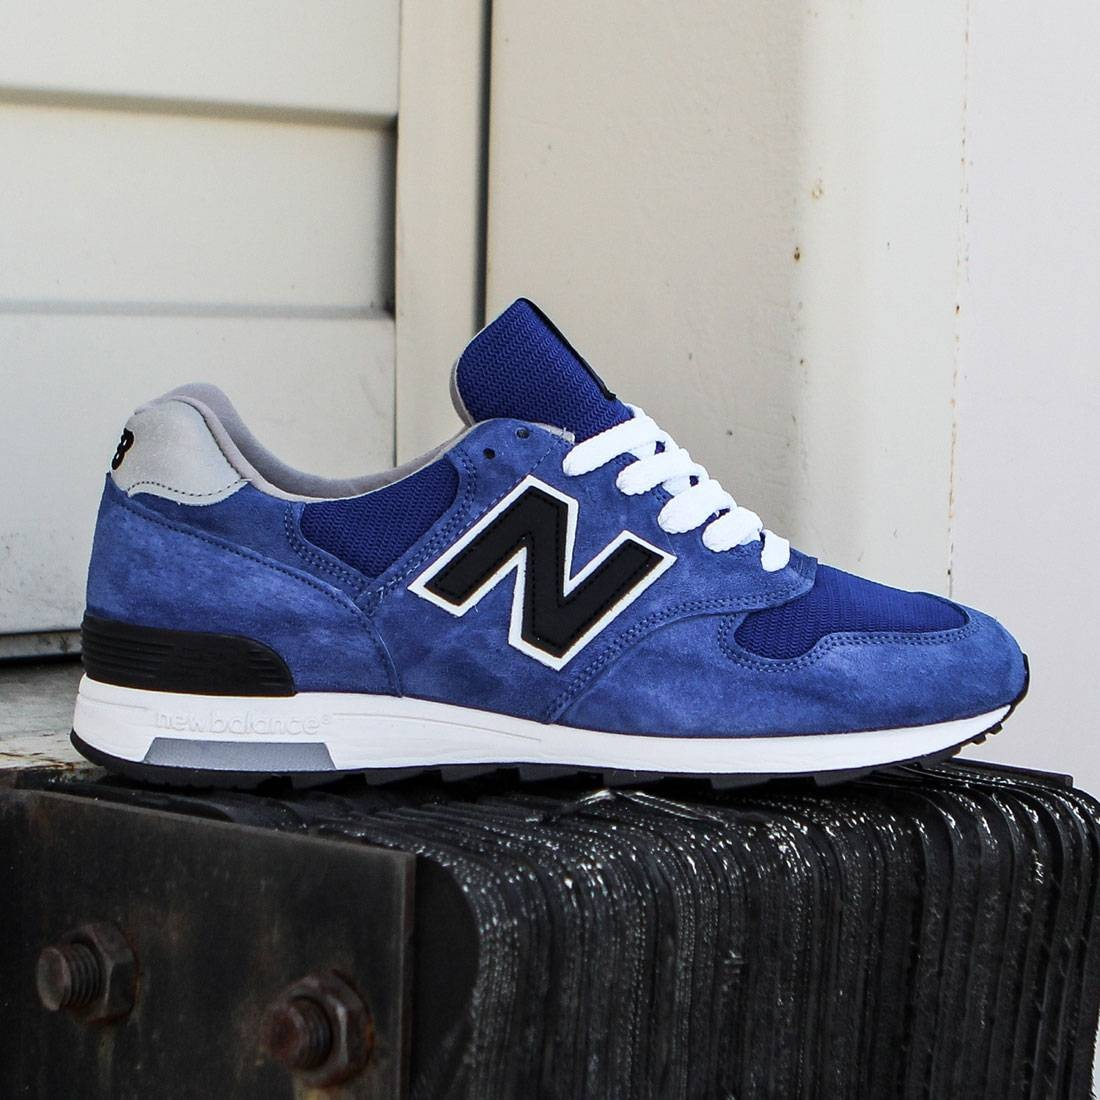 2c07cd664c83a New Balance Men 1400 Explore by Air M1400CBY - Made In USA blue black